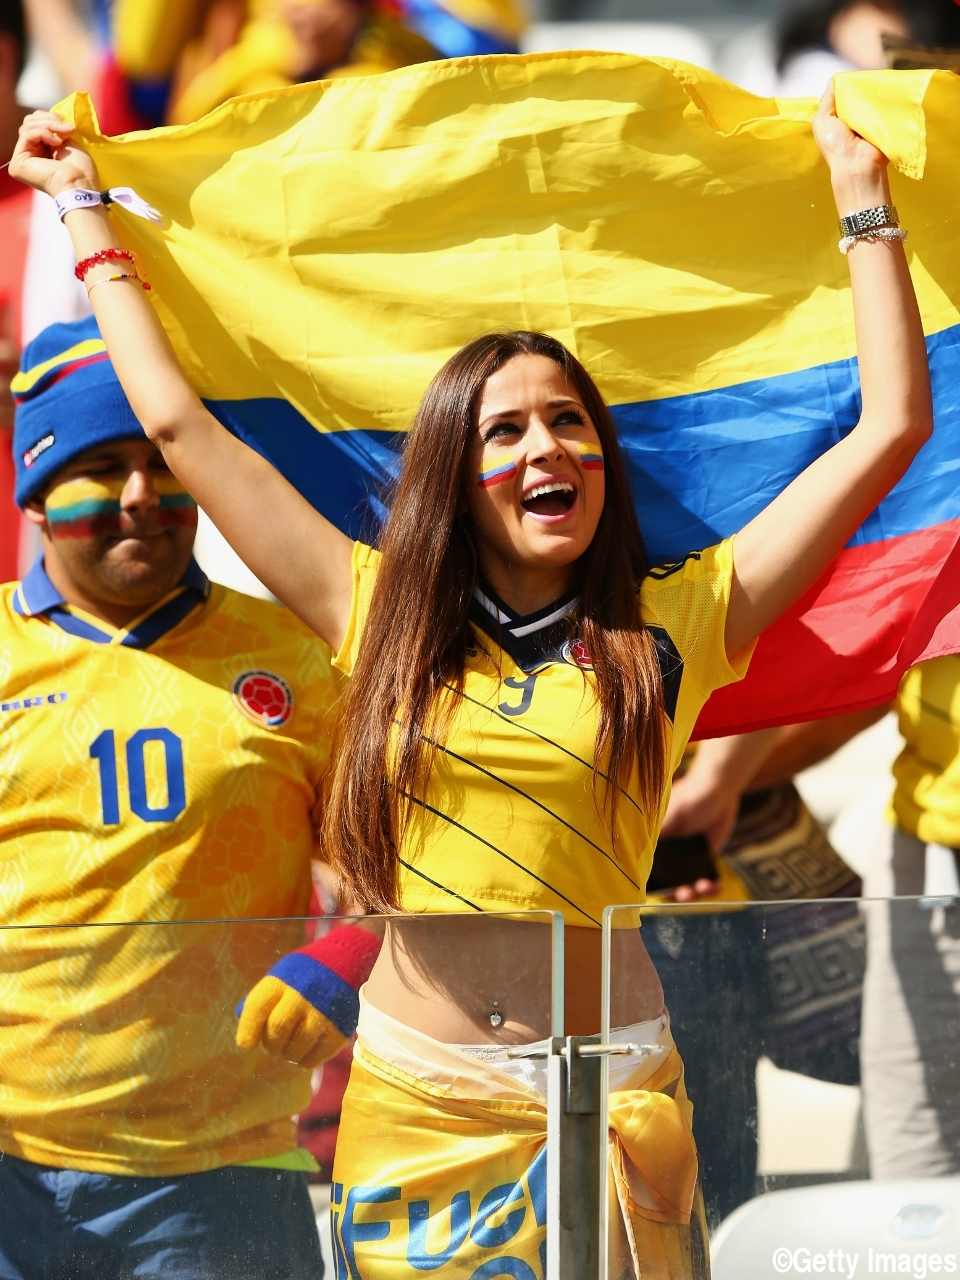 Topic World cup fans hot girls